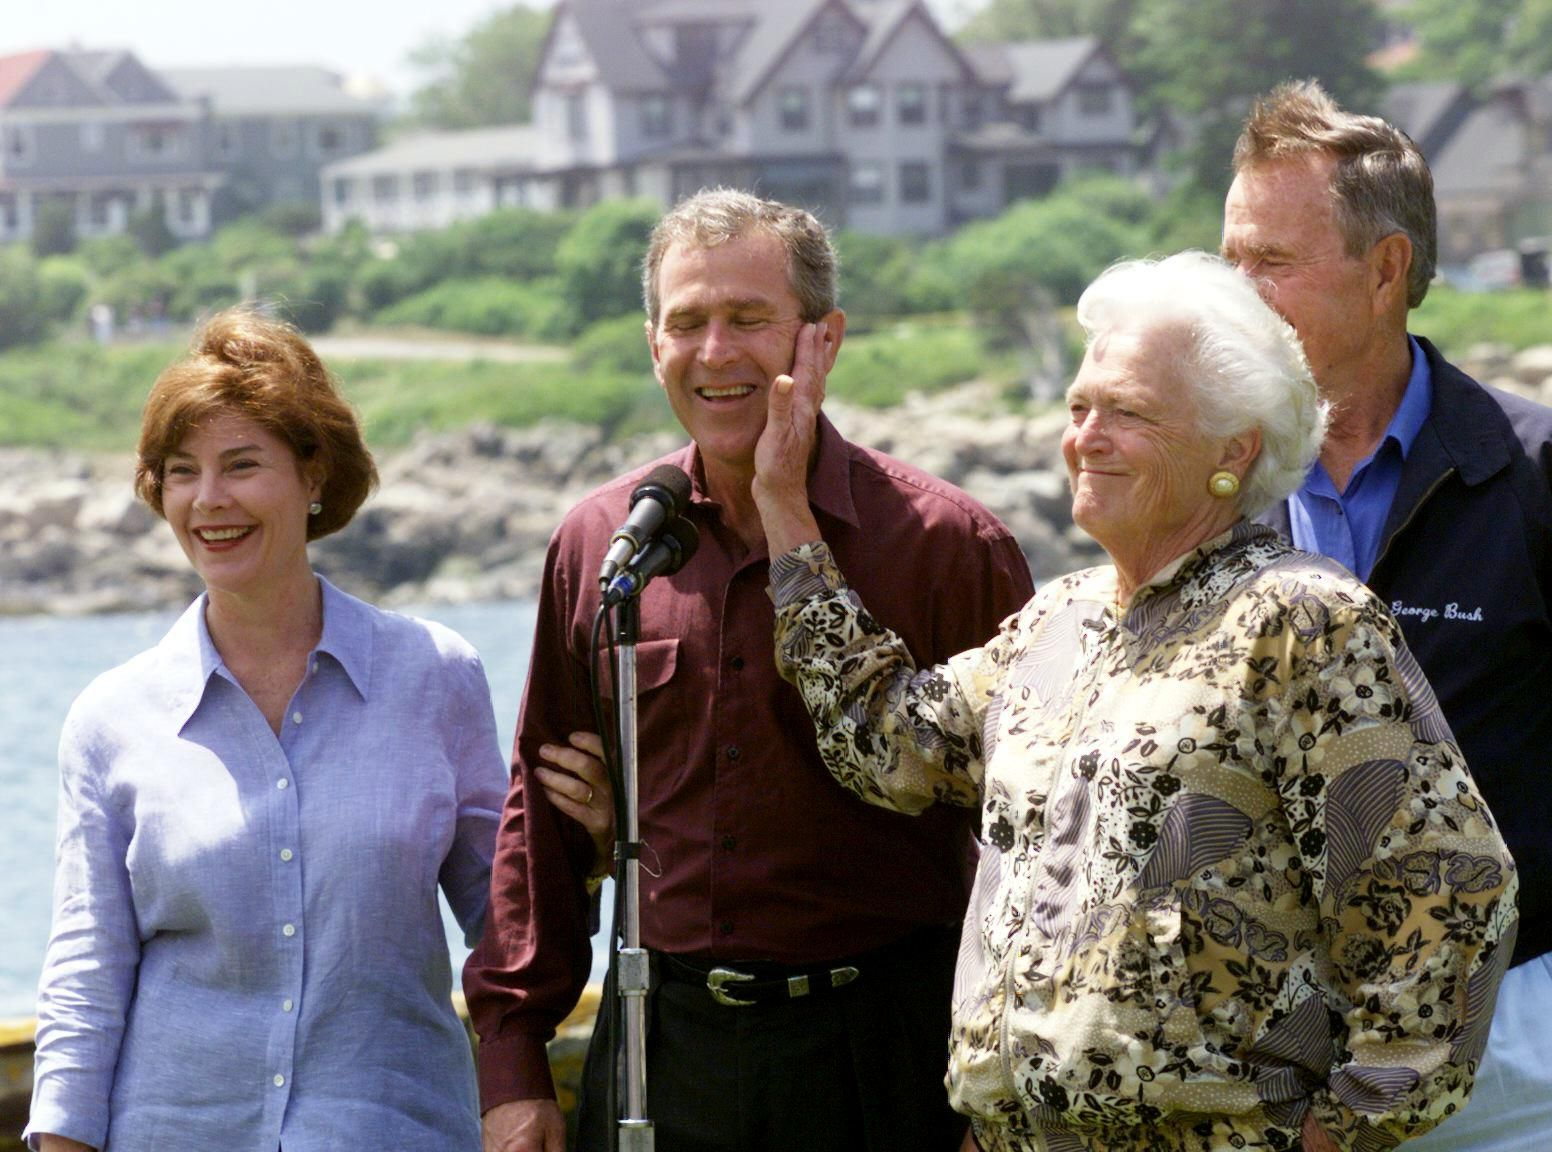 Barbara Bush playfully slaps her son George during a photo op at the family home in Kennebunkport, Maine, in June 1999. George W. Bush, standing with his wife, Laura, was Texas governor at the time.